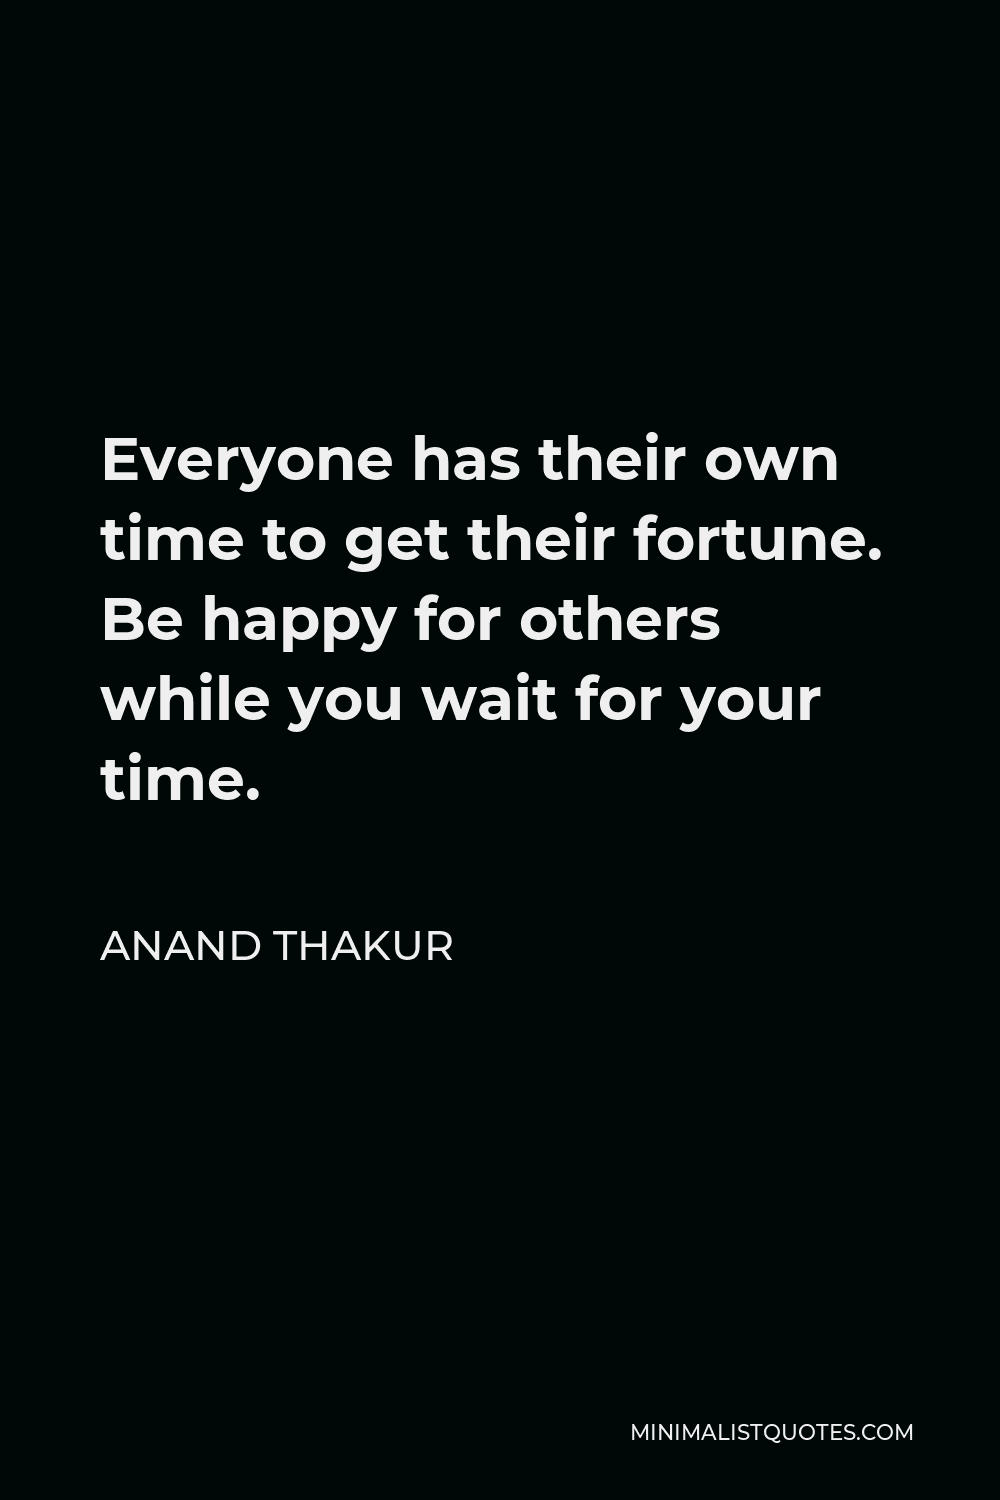 Anand Thakur Quote - Everyone has their own time to get their fortune. Be happy for others while you wait for your time.